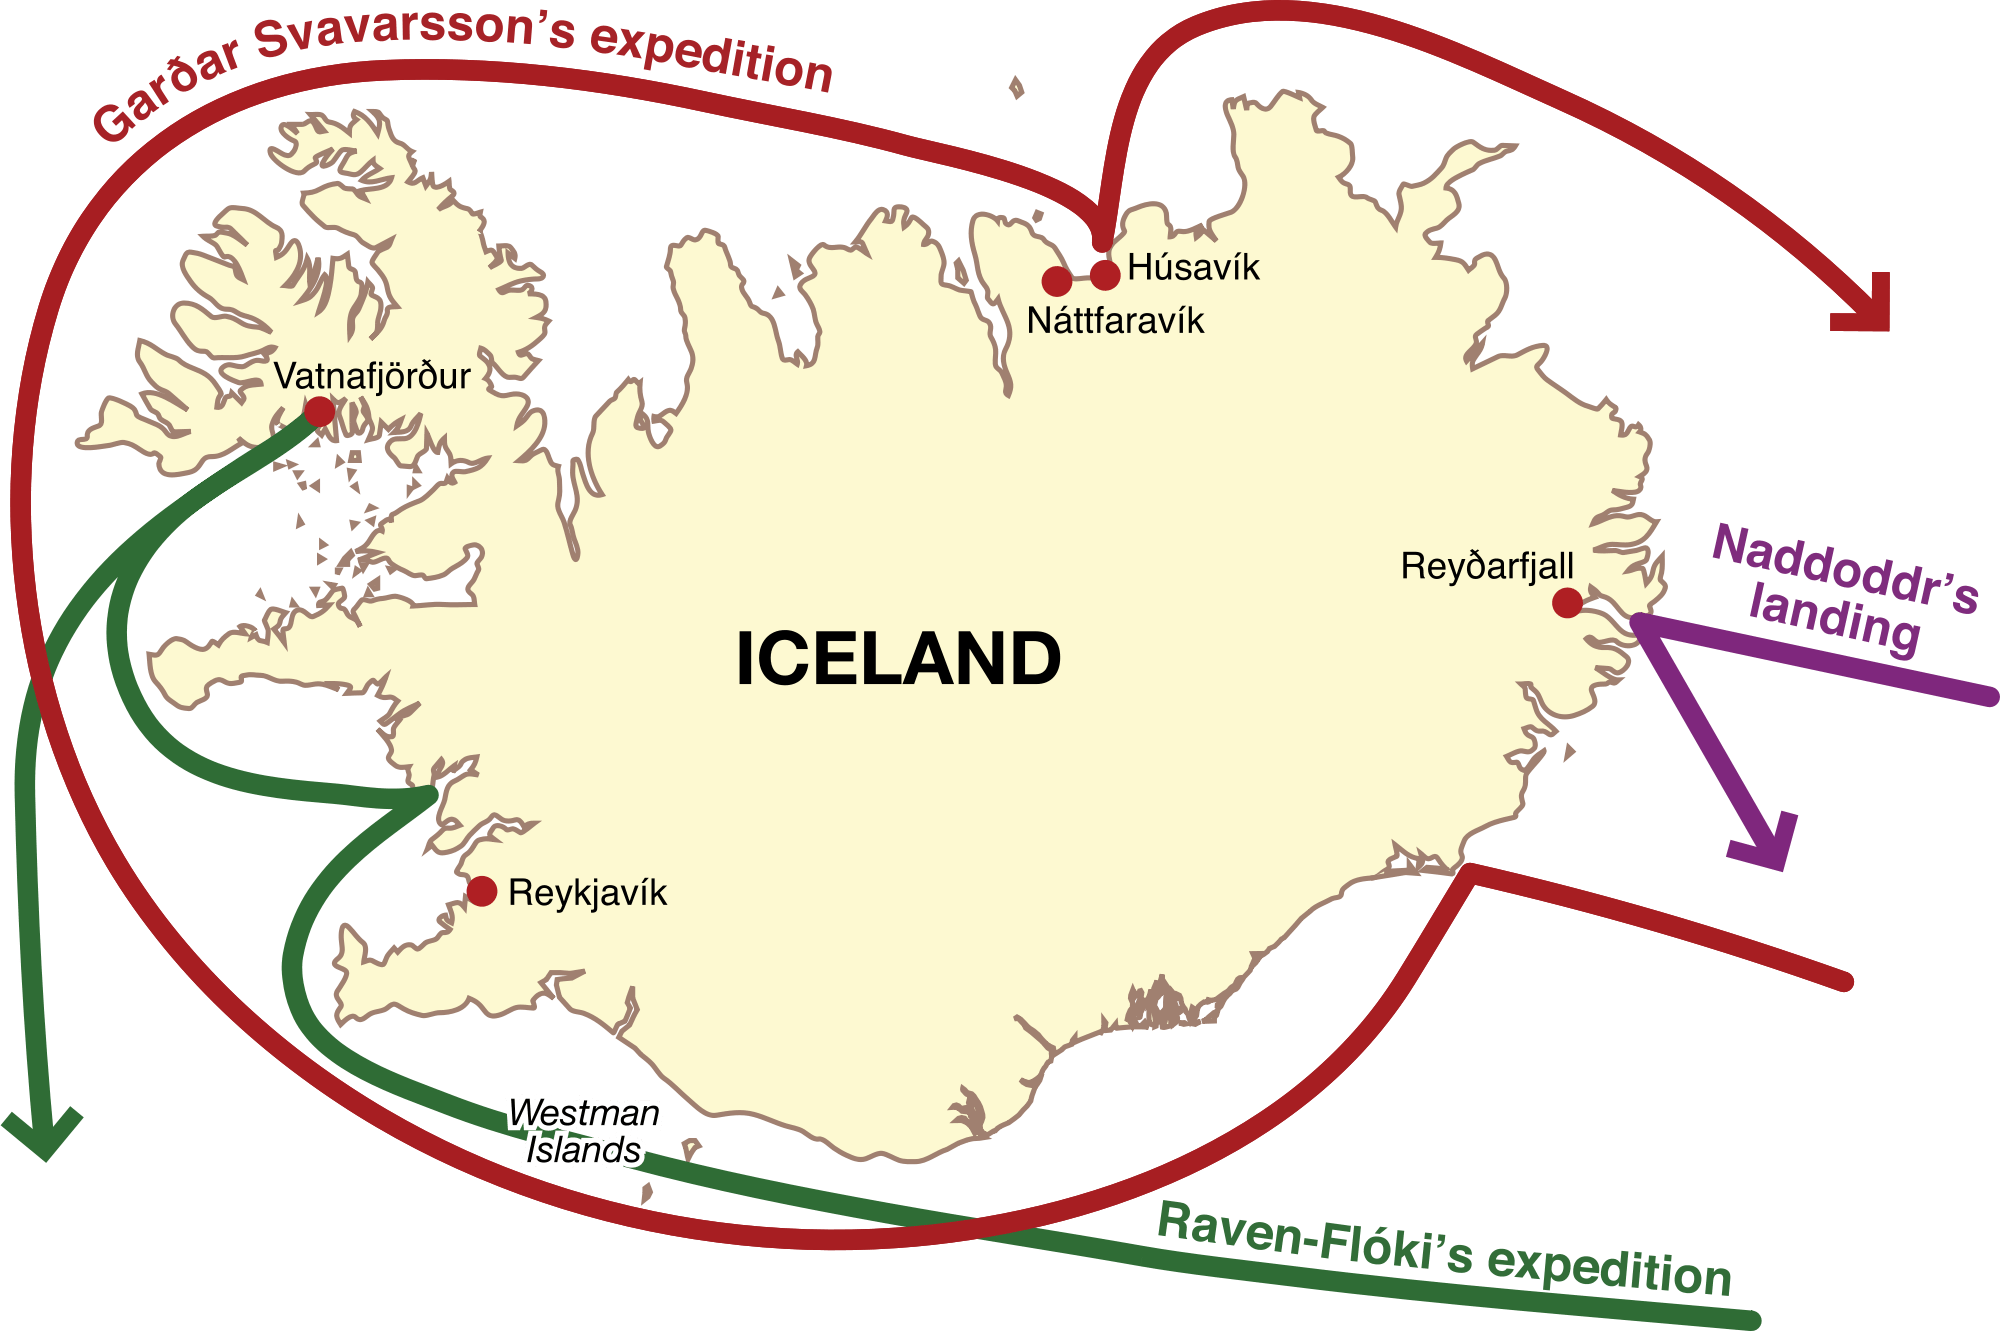 The norse discovery and settlement of iceland during the viking age map highlighting the norse expeditions to iceland during the 9th century image source commonsmedia gumiabroncs Gallery